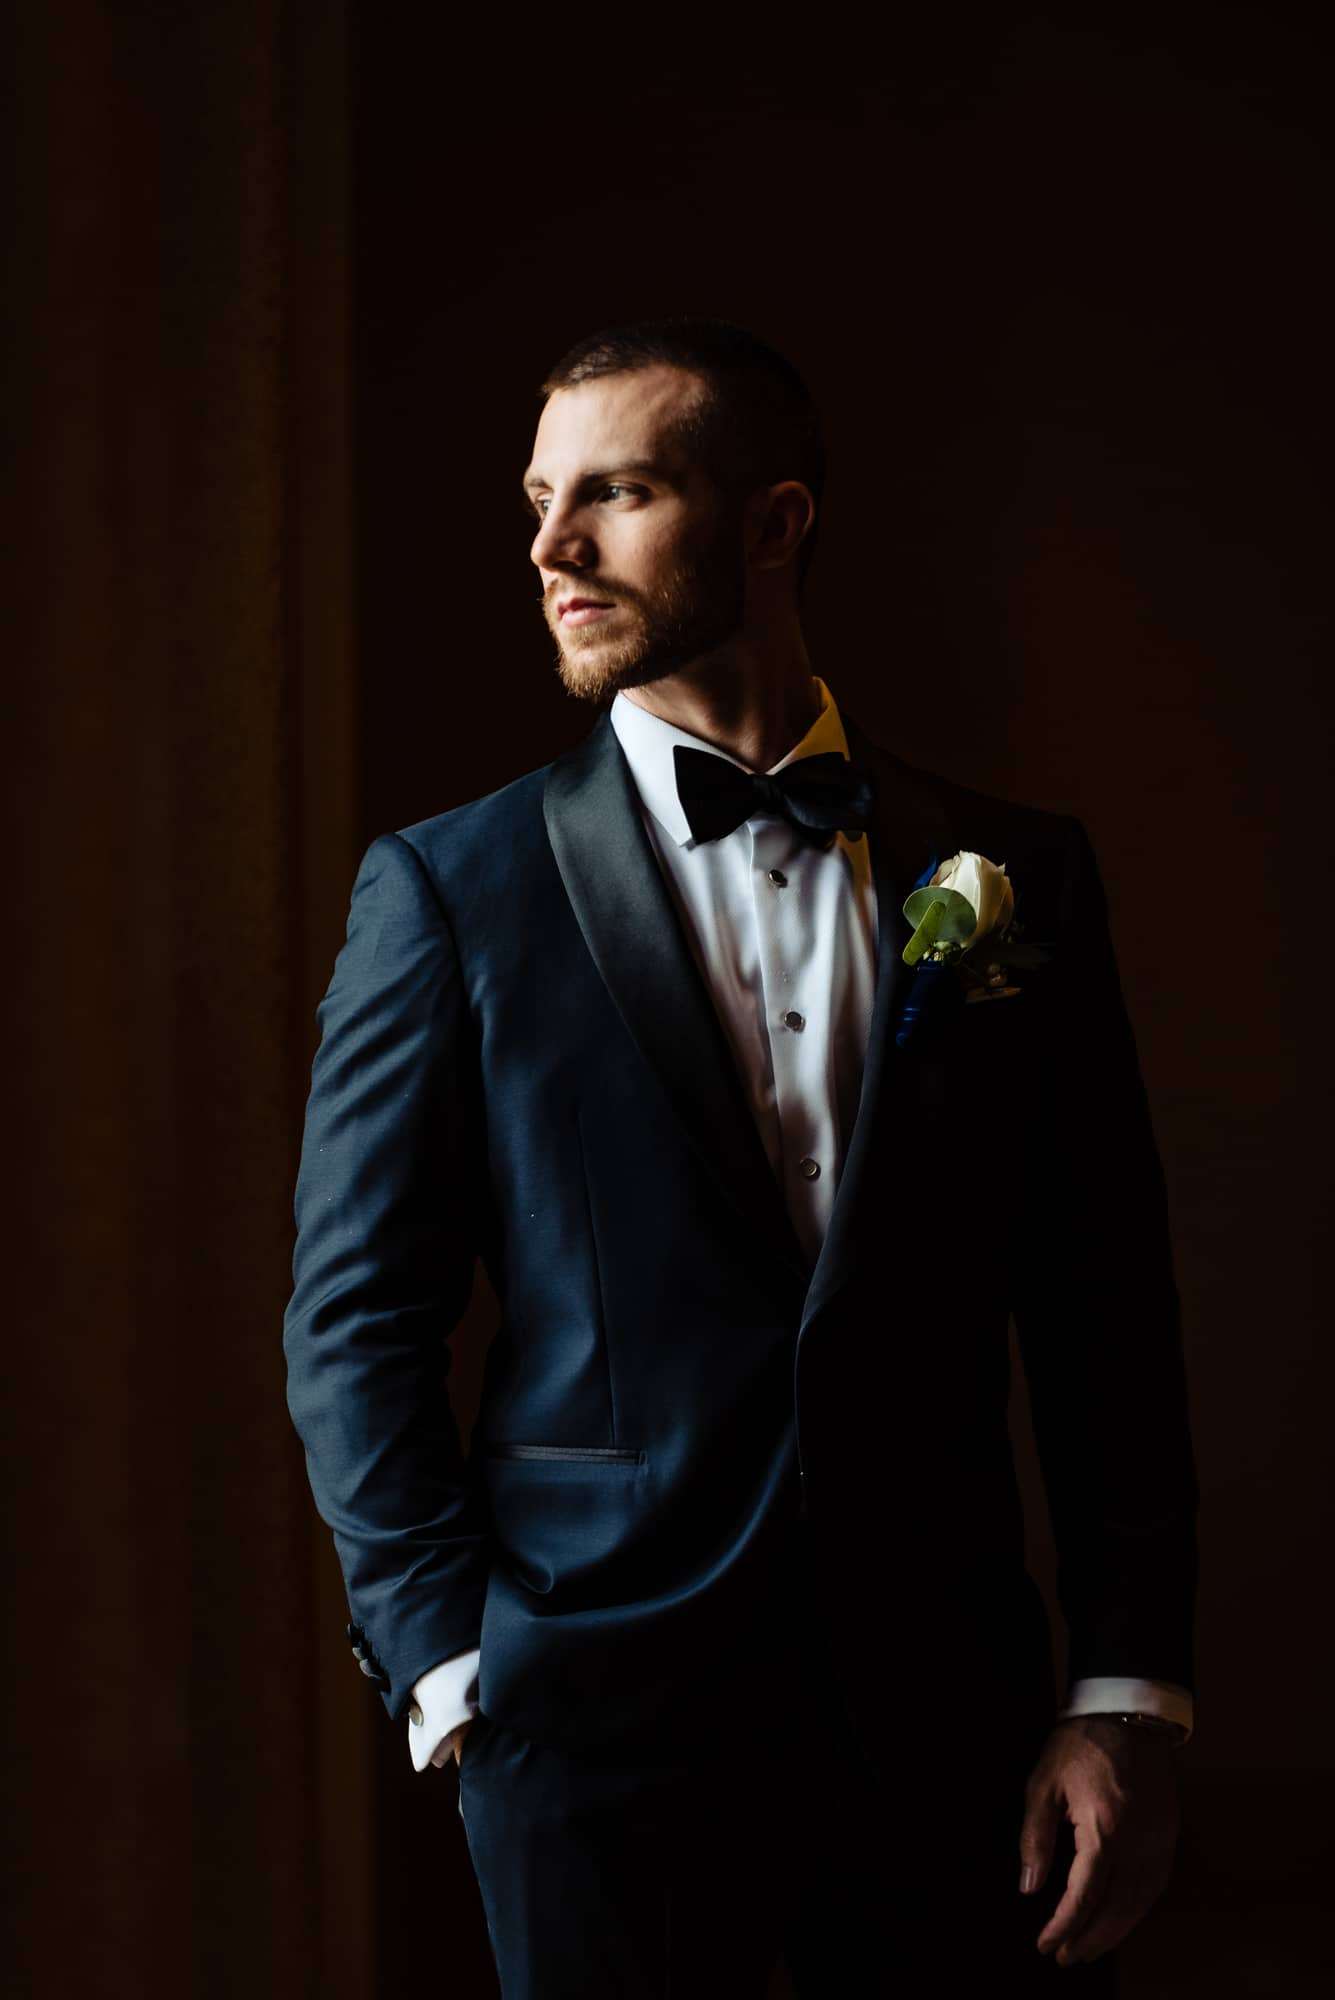 Groom posing in beautiful window light